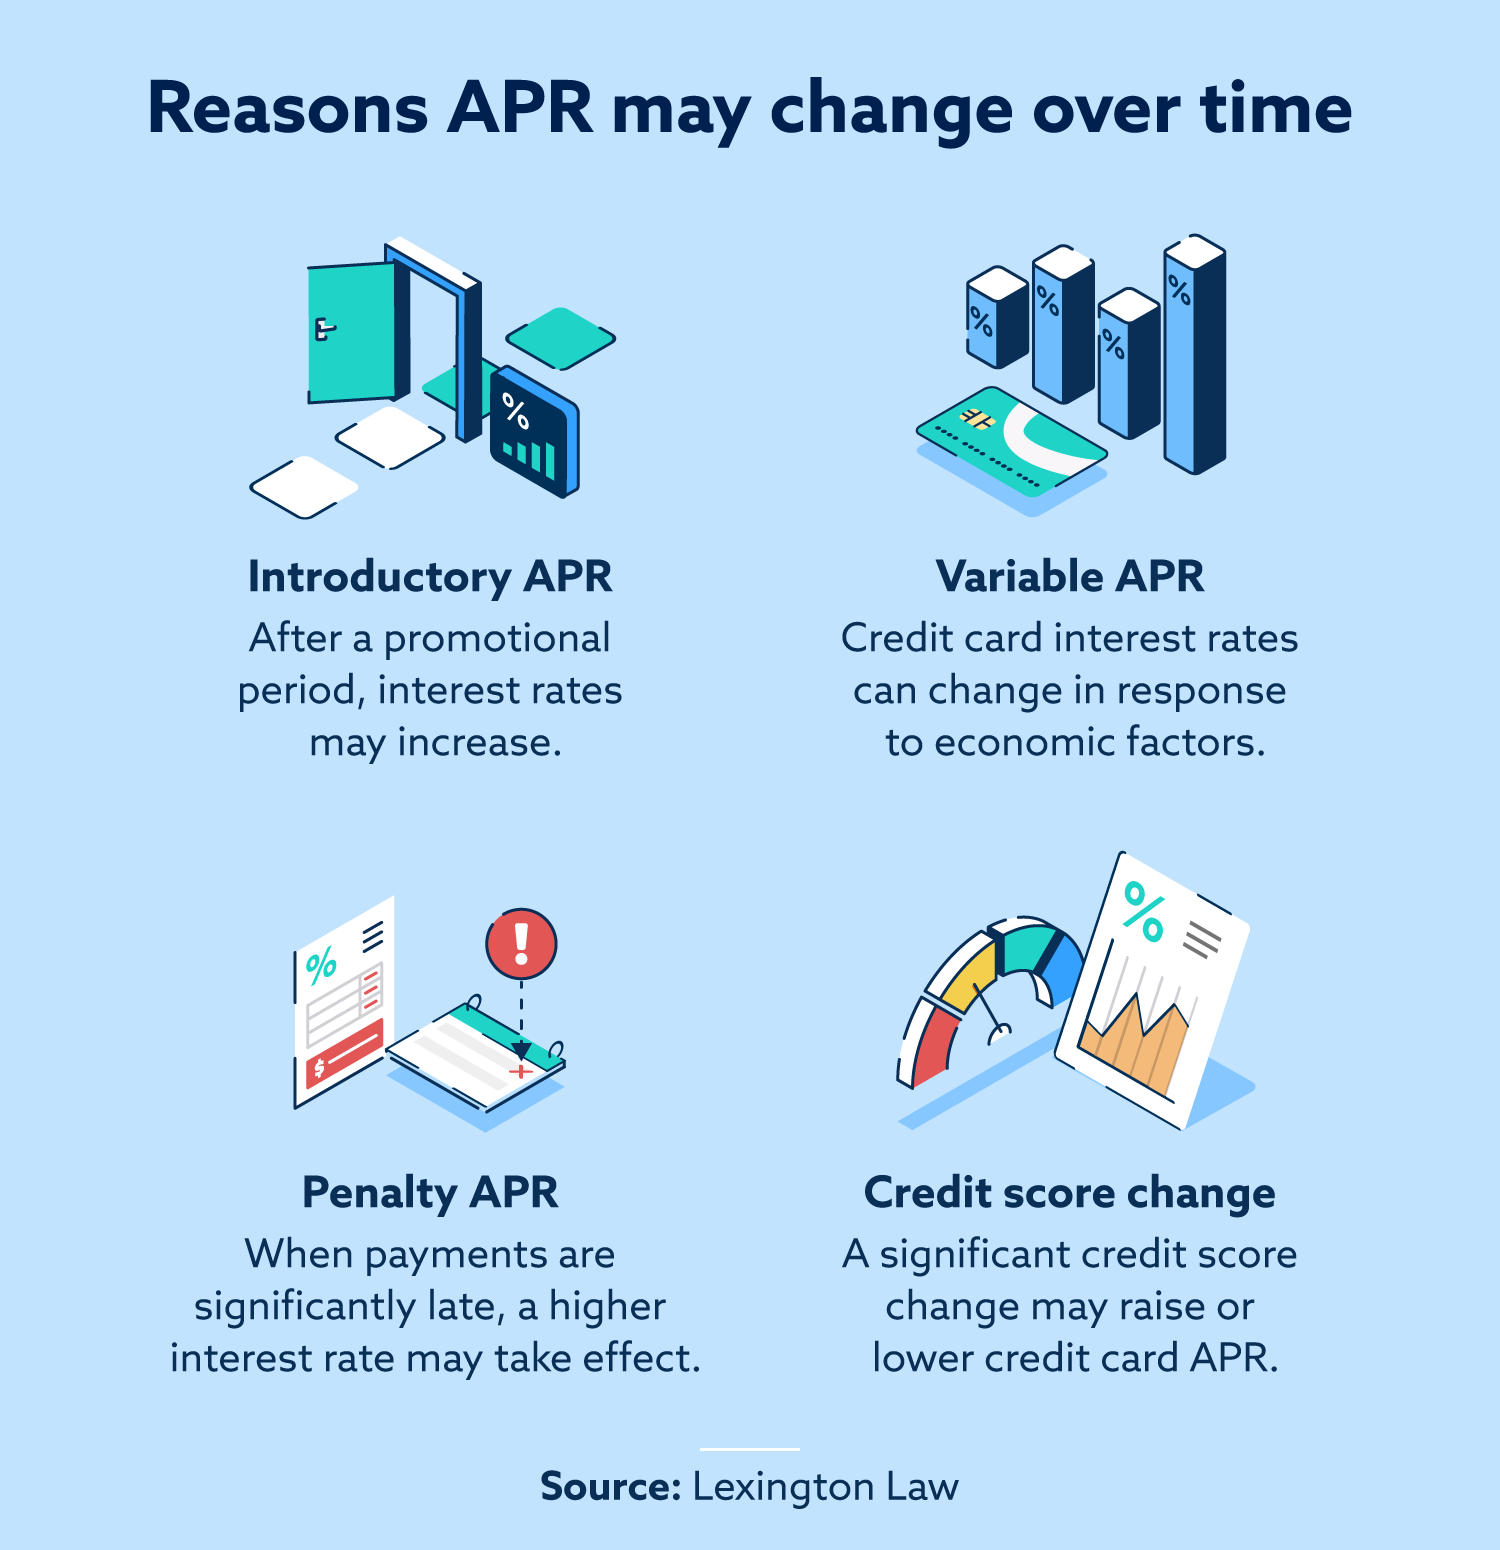 Reasons APR may change over time.